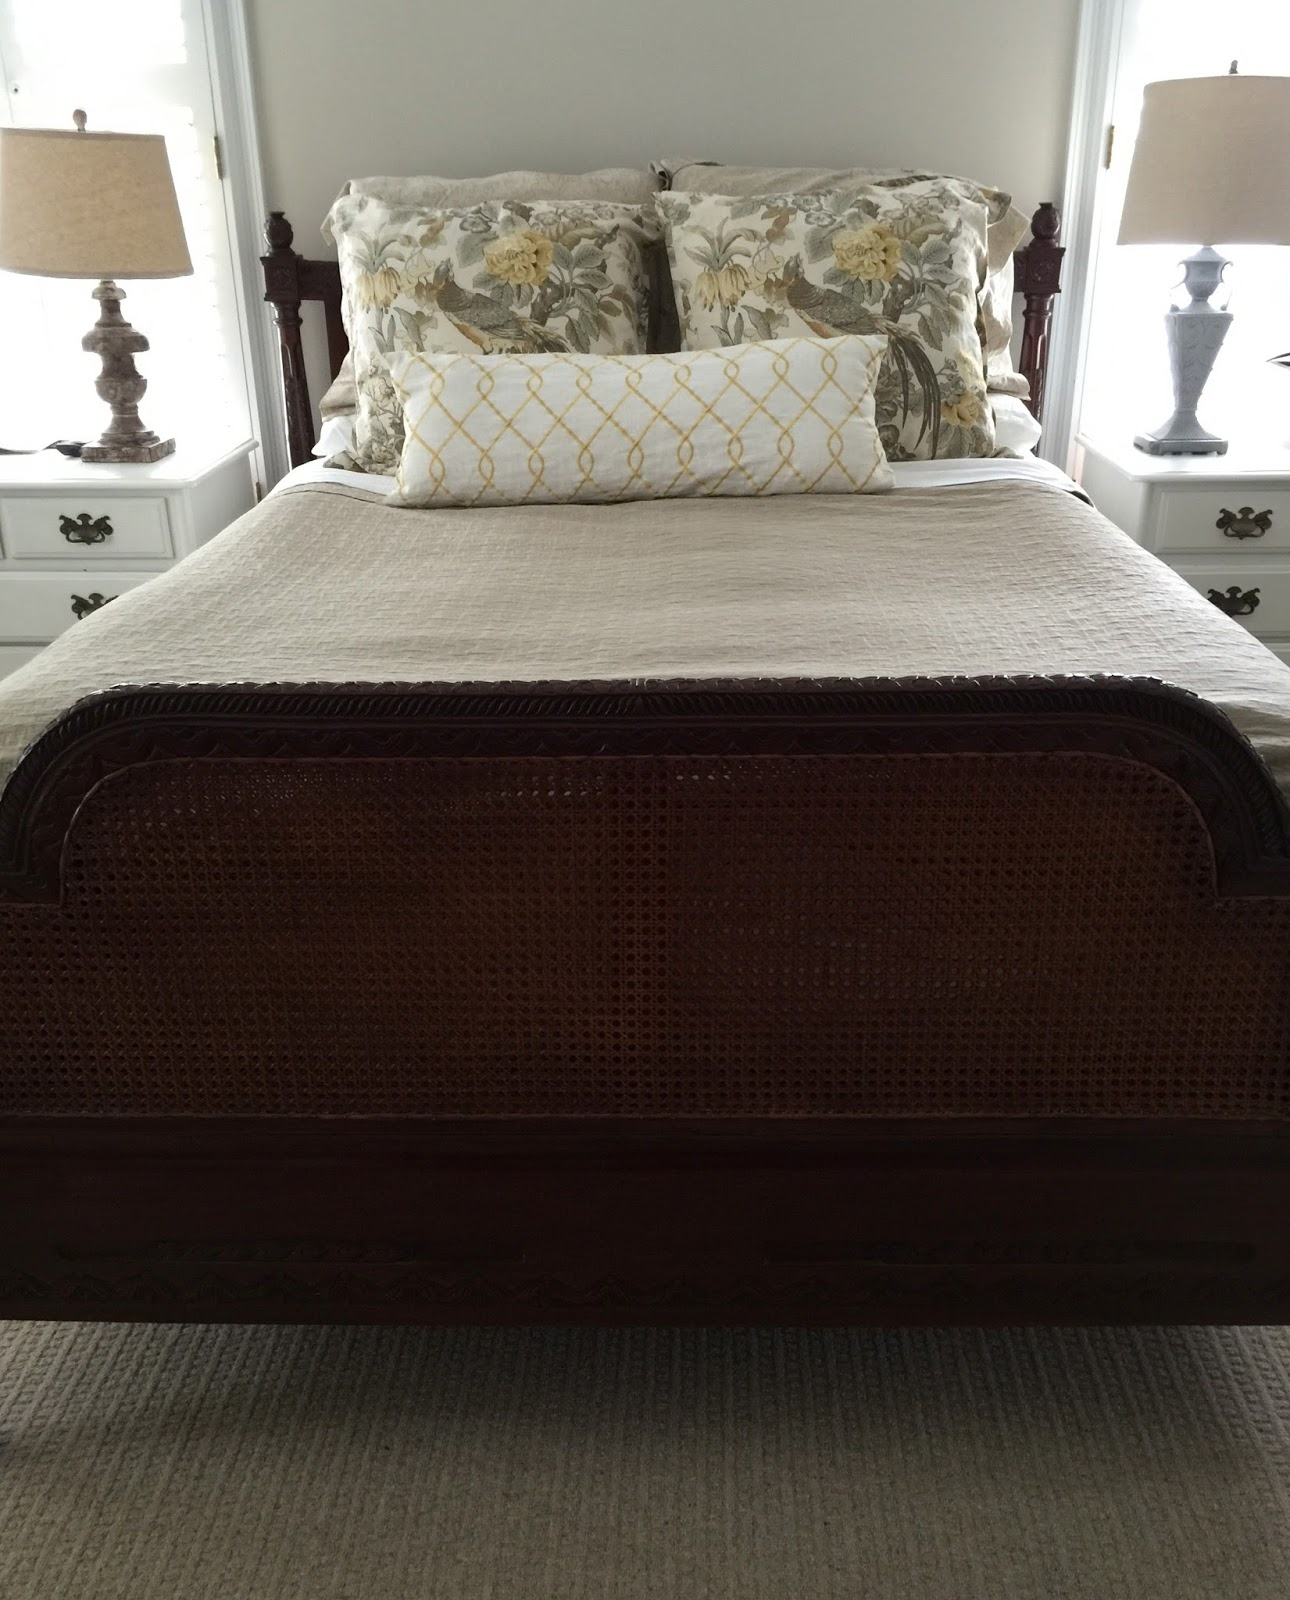 Designing Domesticity The Layered Bed Baby Steps